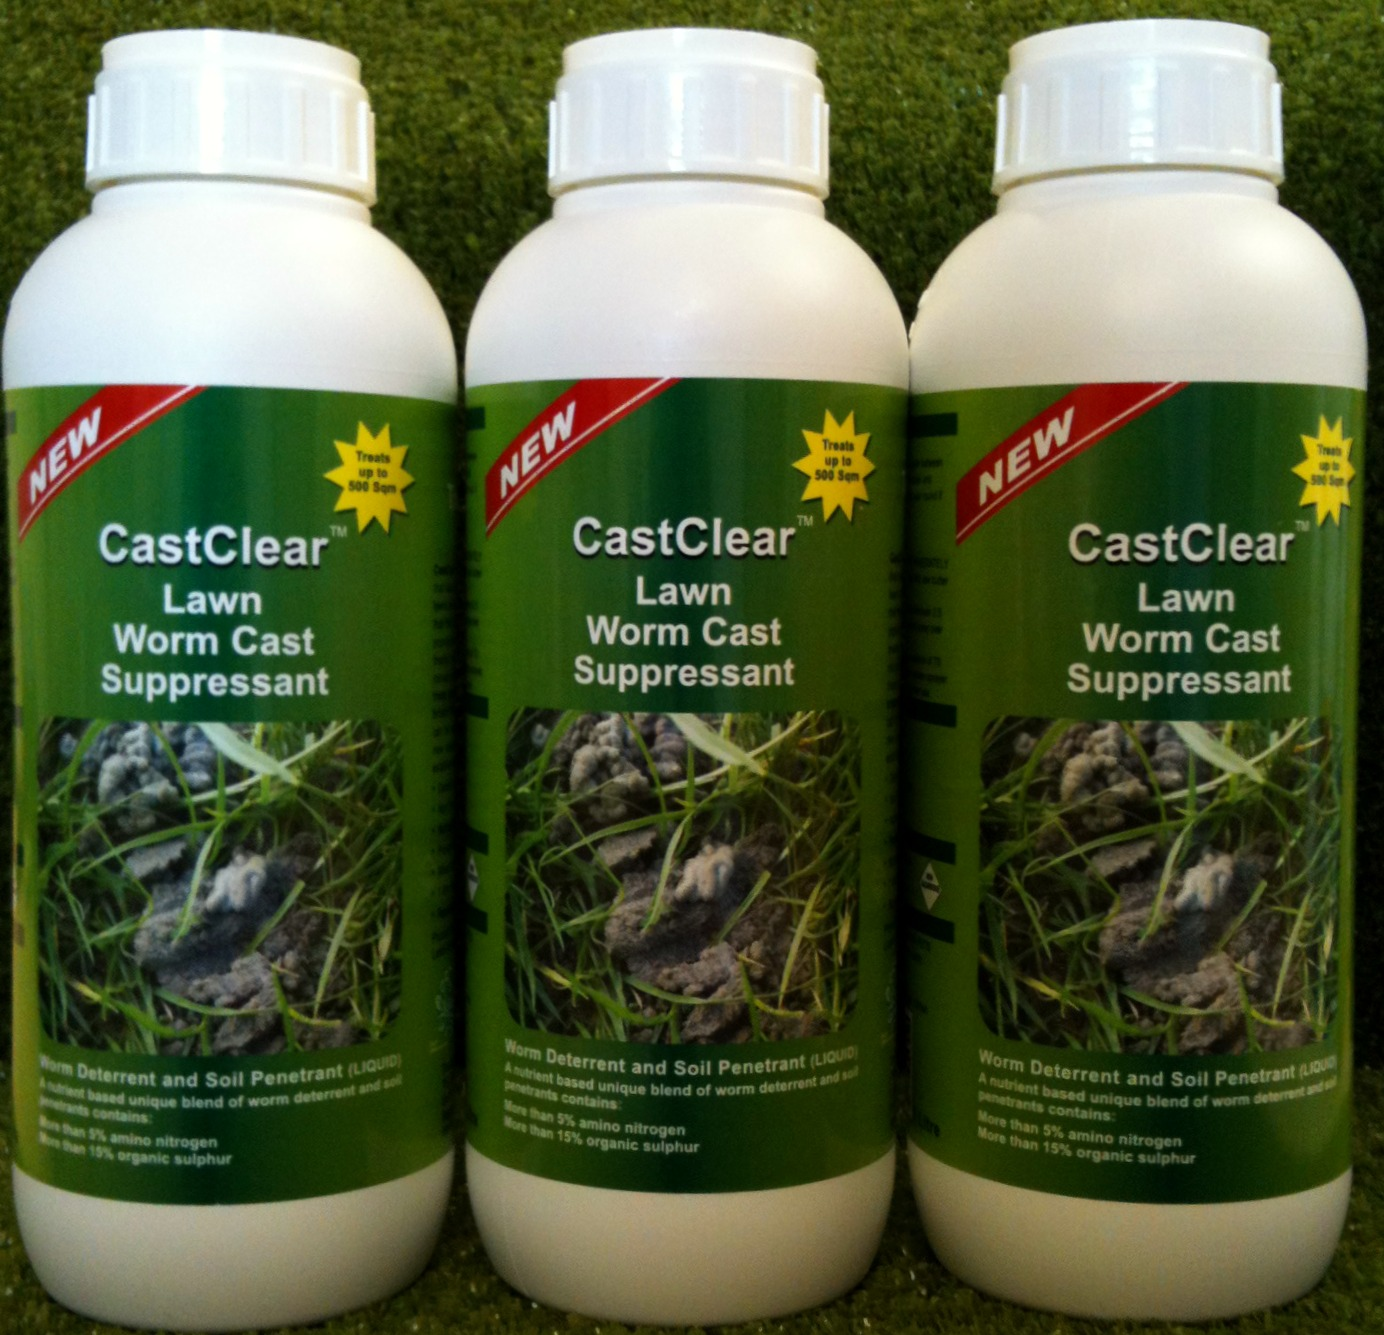 Lawn Worm Casts Castclear Is The Solution